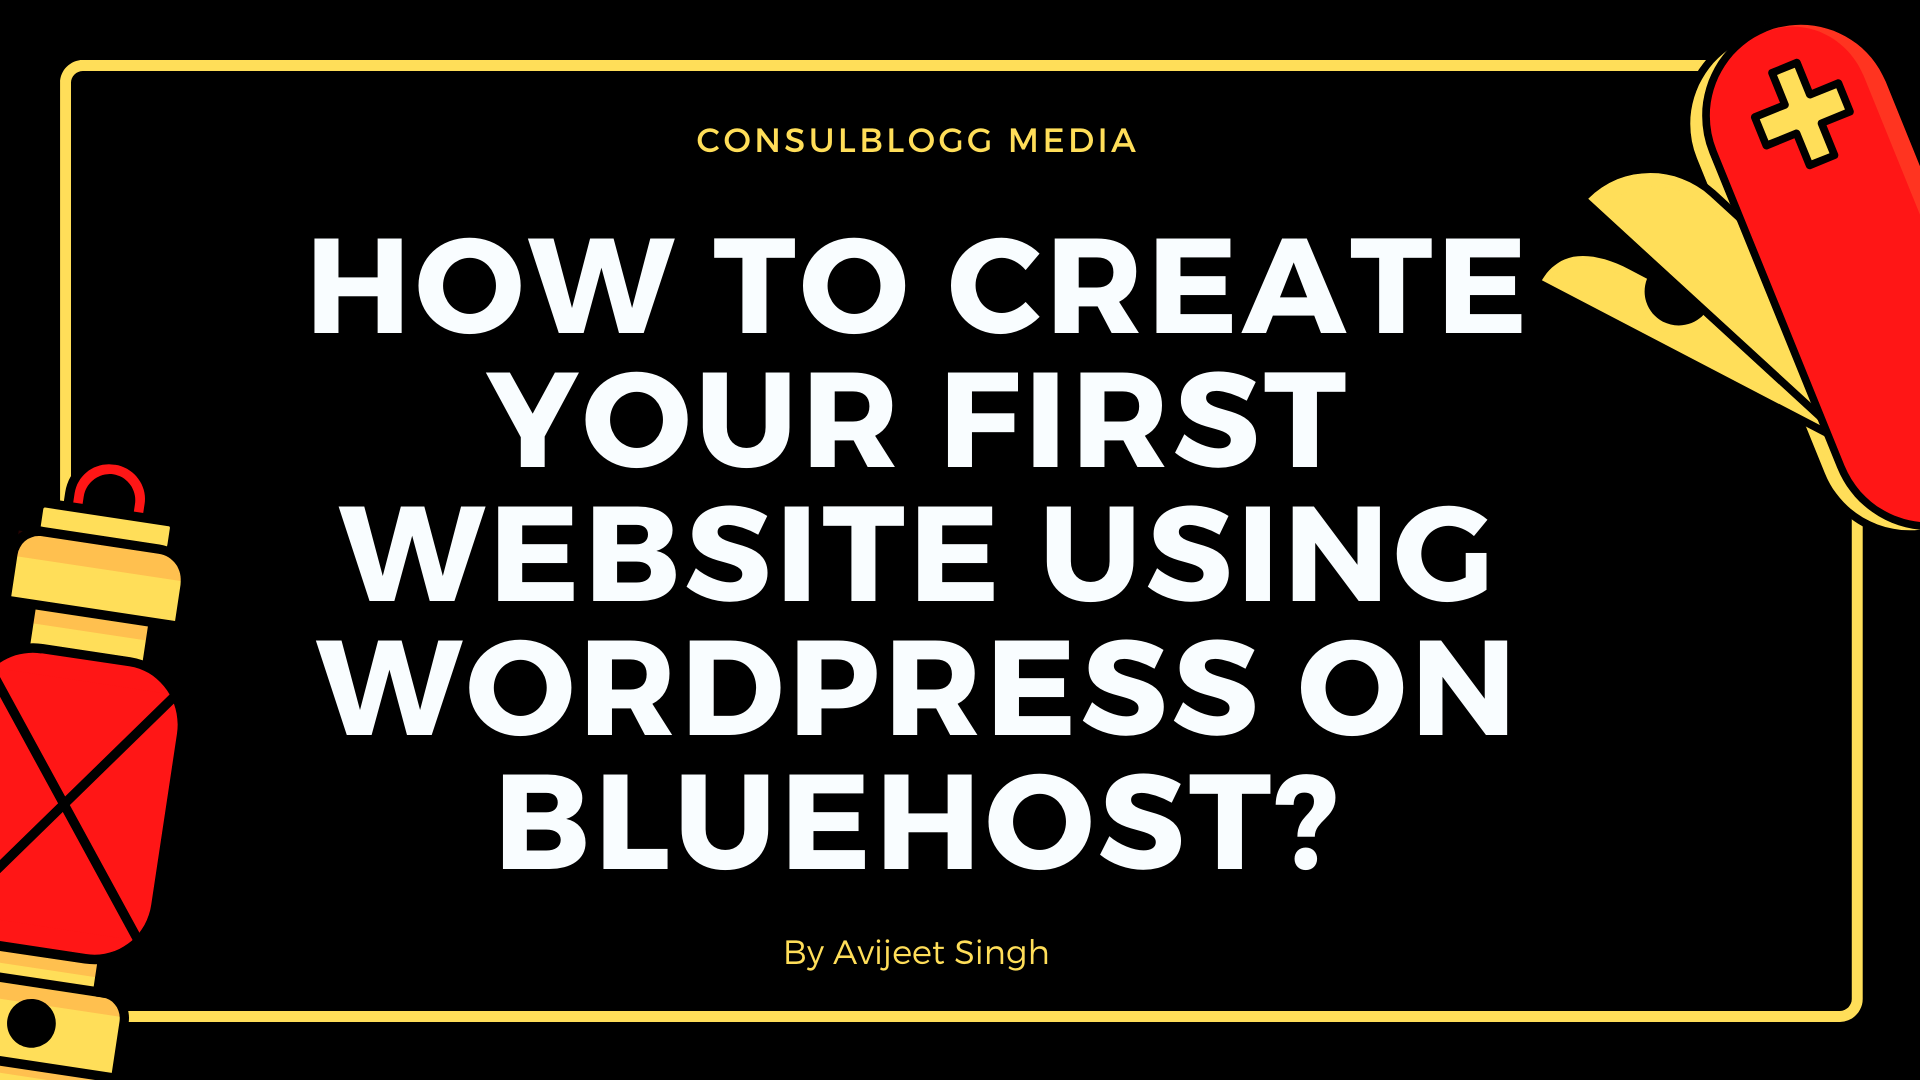 How to create your first website using WordPress on Bluehost?